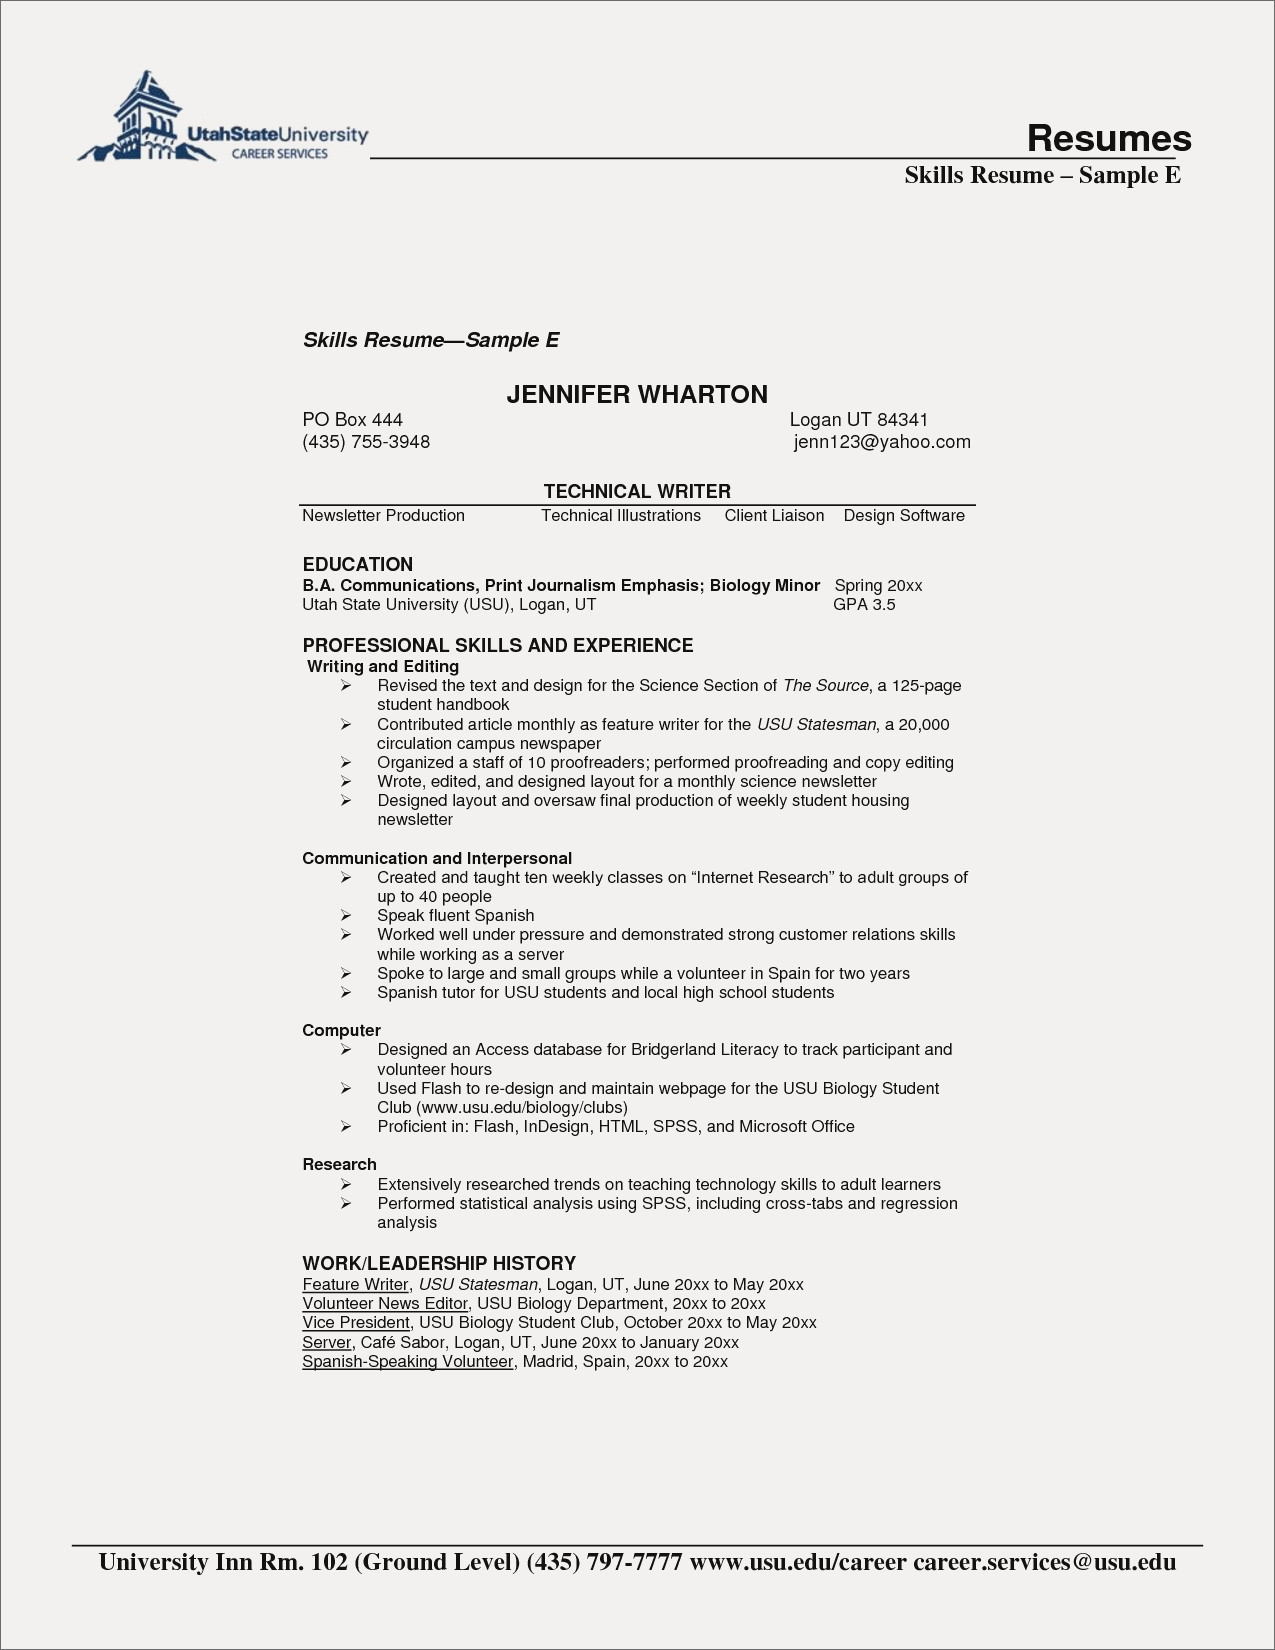 Production Resume Template - Cheap Resumes Fresh Puter Skills Example Unique Examples Resumes